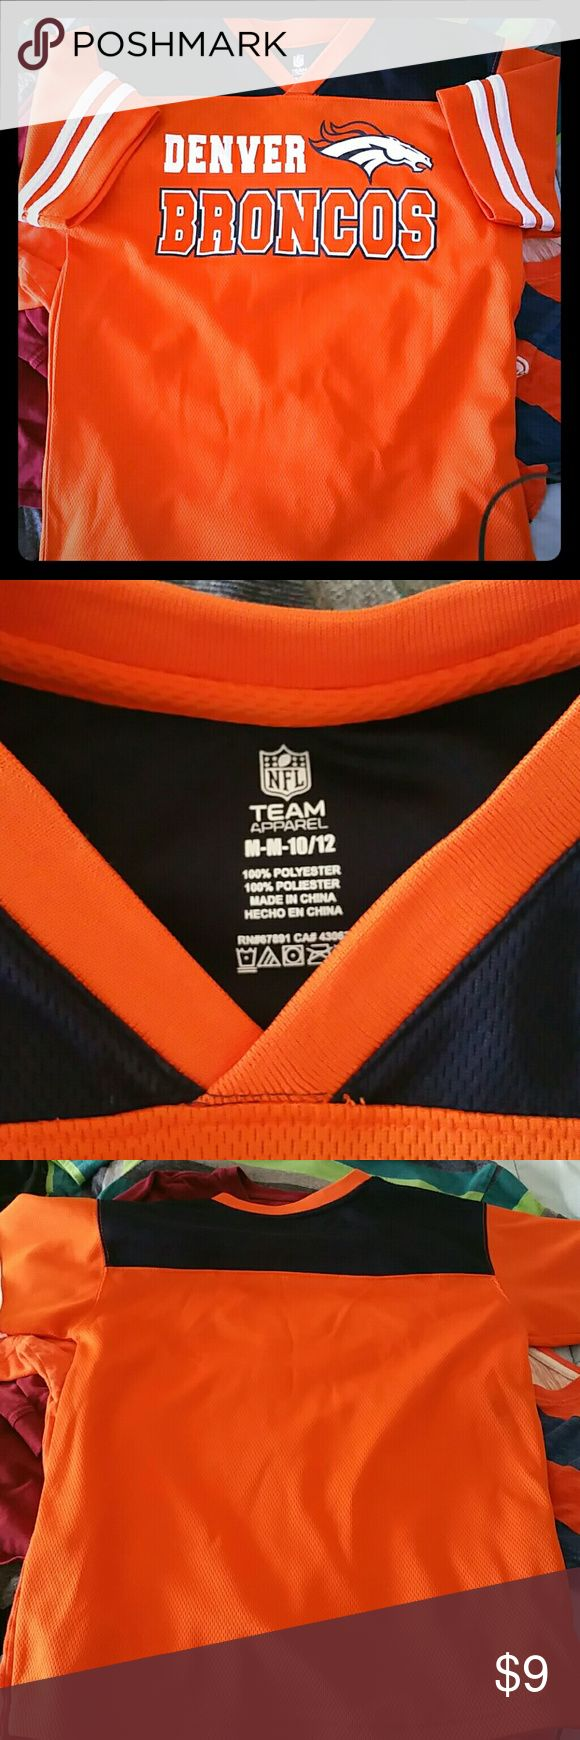 Broncos thermal t shirt Jersey feel,  V-neck Broncos shirt, never worn! Like new,  no snags or stains! NFL Team Apparel Shirts & Tops Tees - Short Sleeve